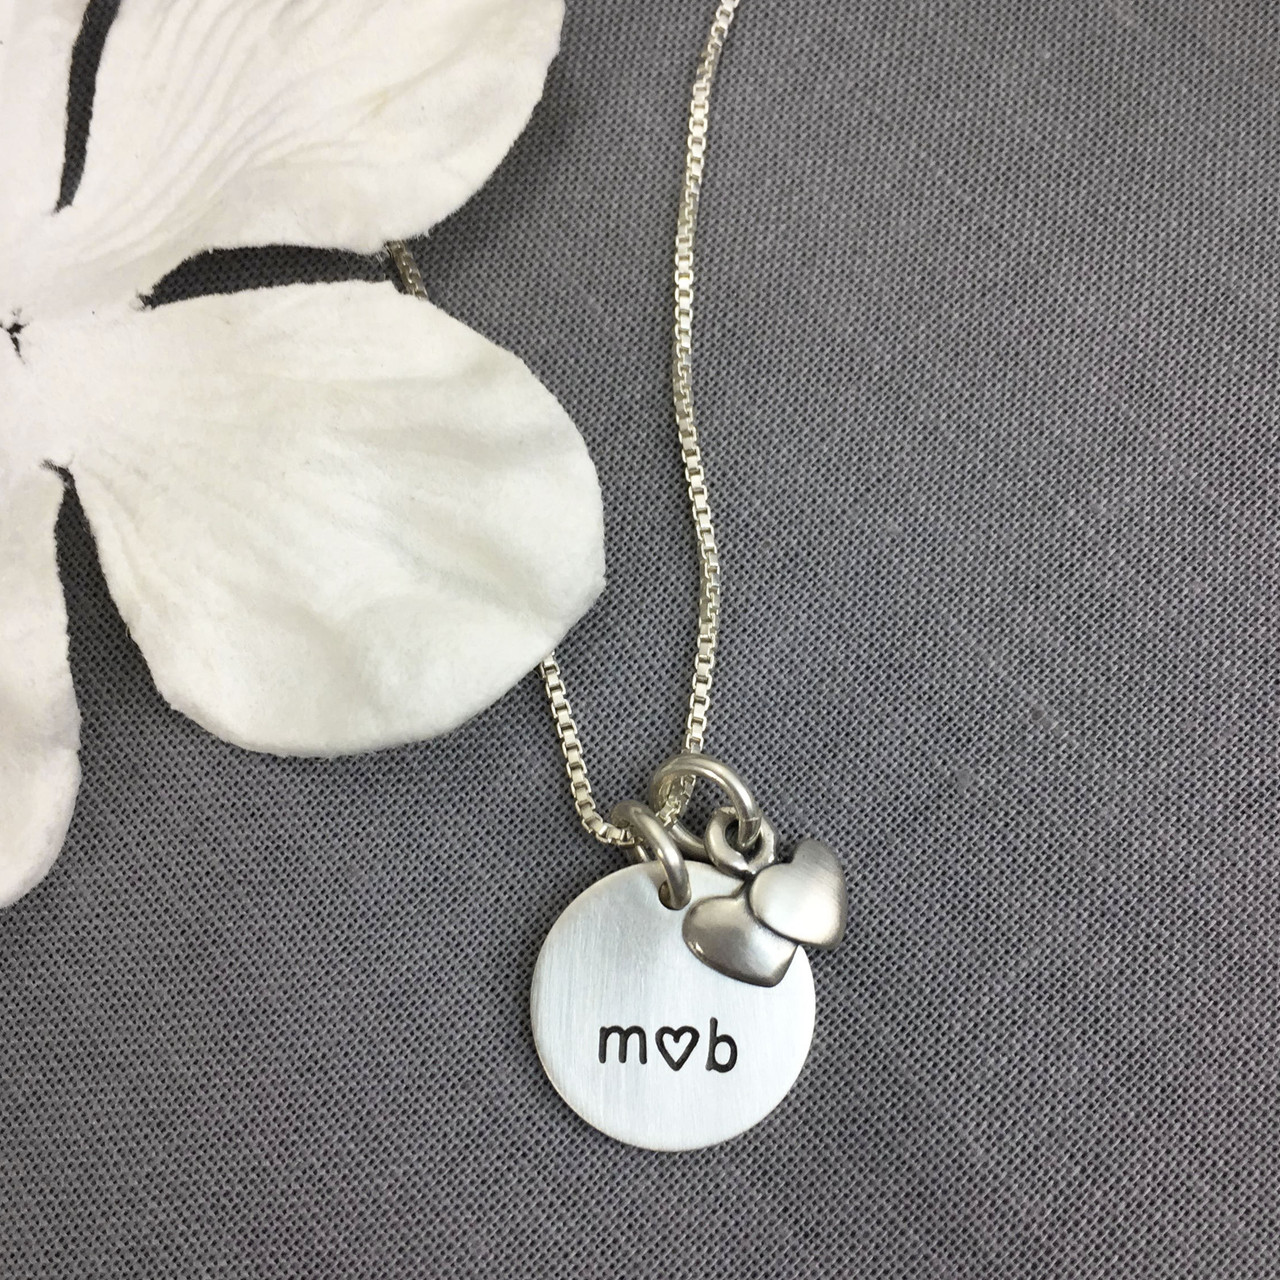 You and Me Engagement Necklace